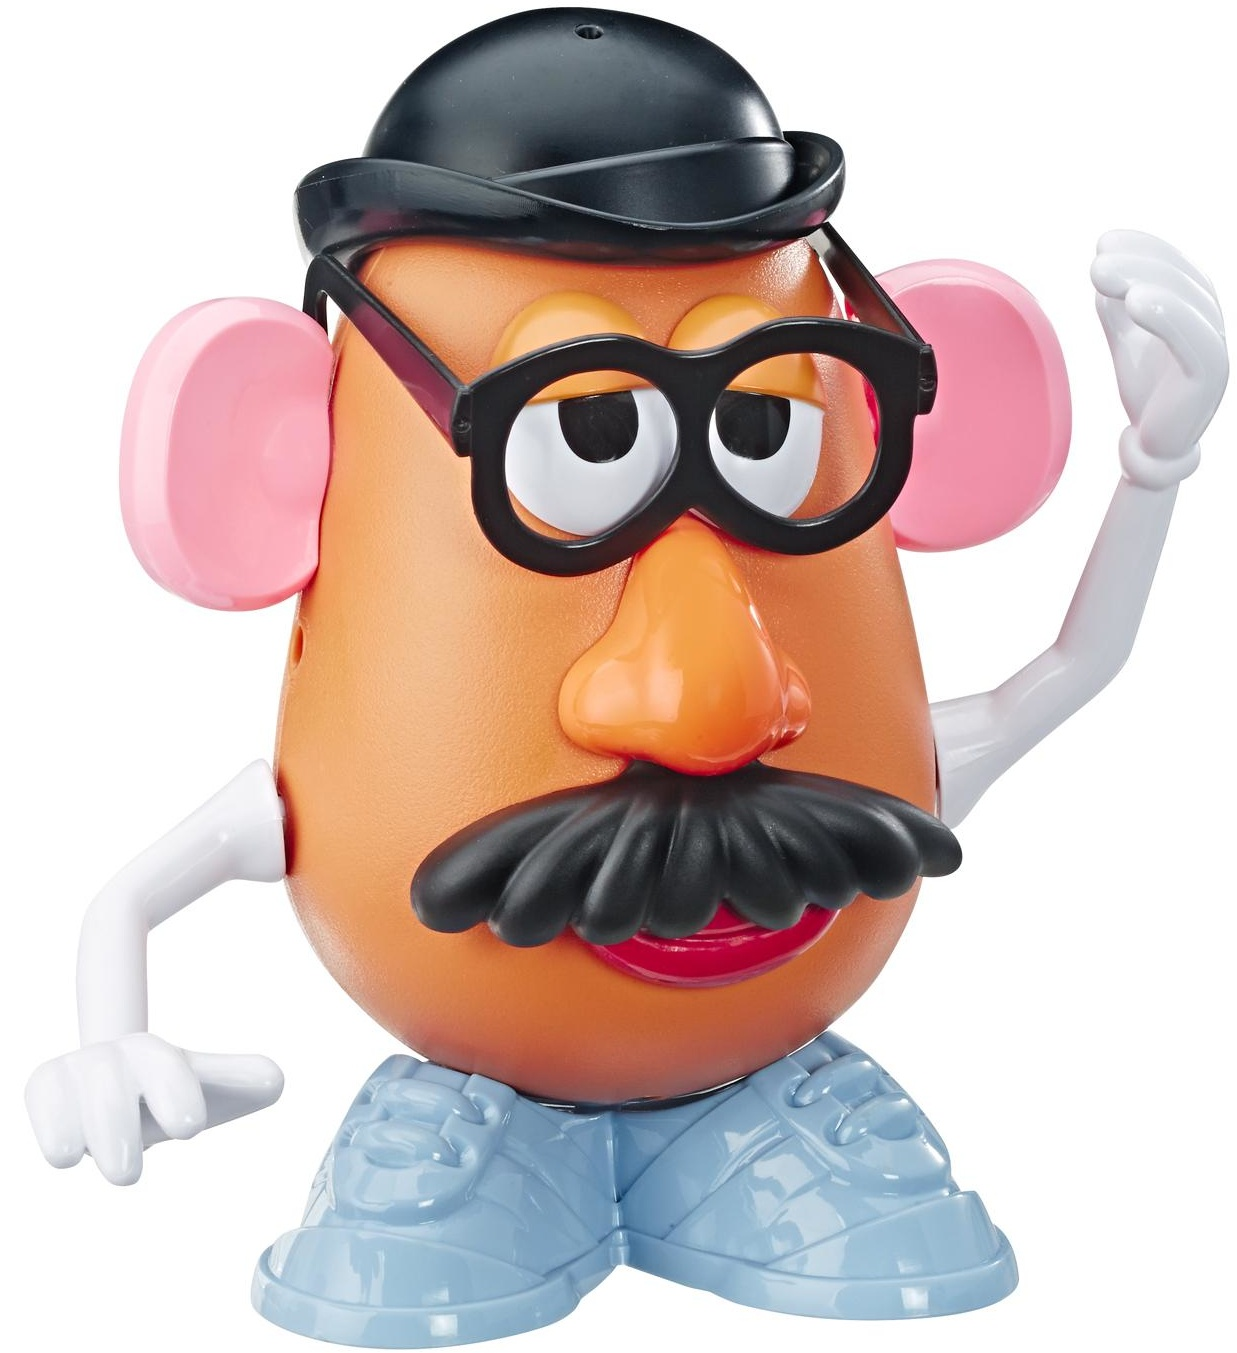 https://www.internet-toys.com/producten/large/playskool_speelfiguur_mr._potatohead_14_cm_304023_1562671666.jpg